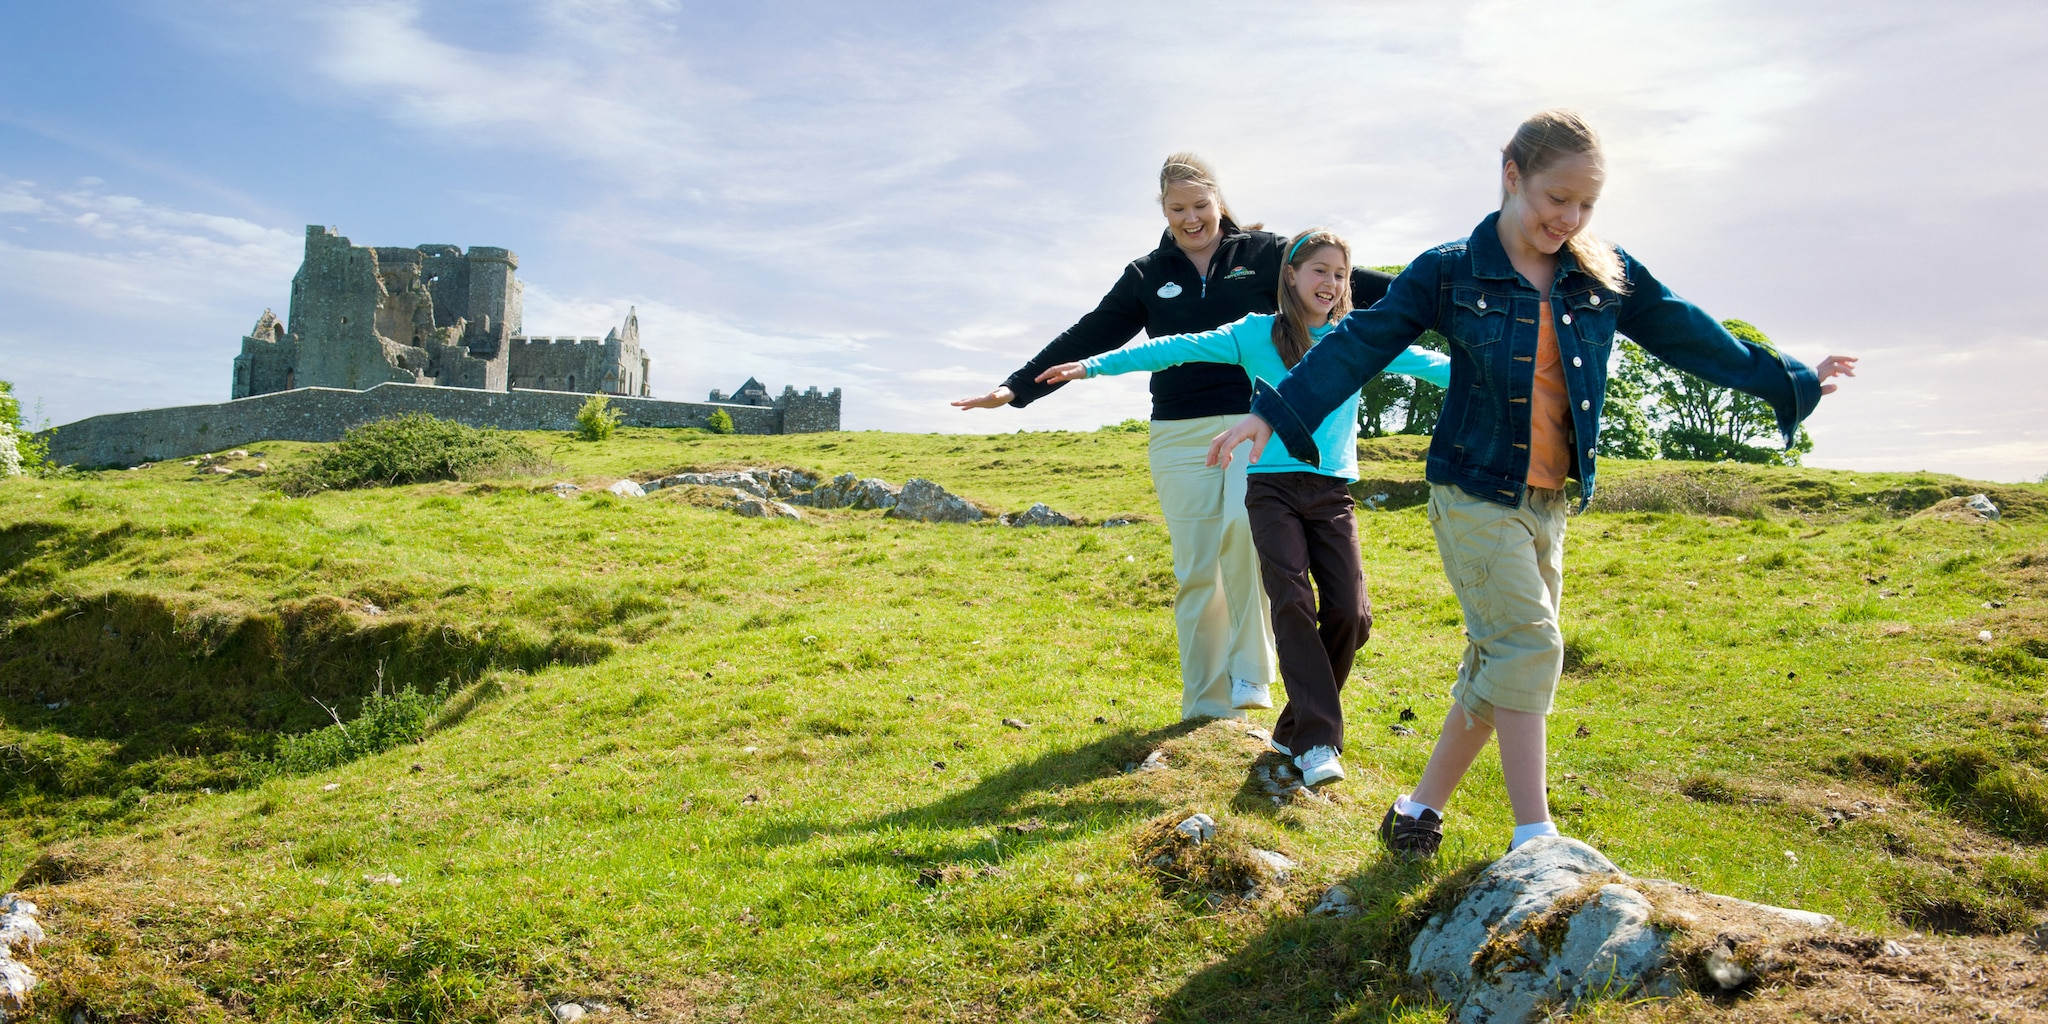 A female Adventure Guide and 2 girls walk on grass near the Rock of Cashel